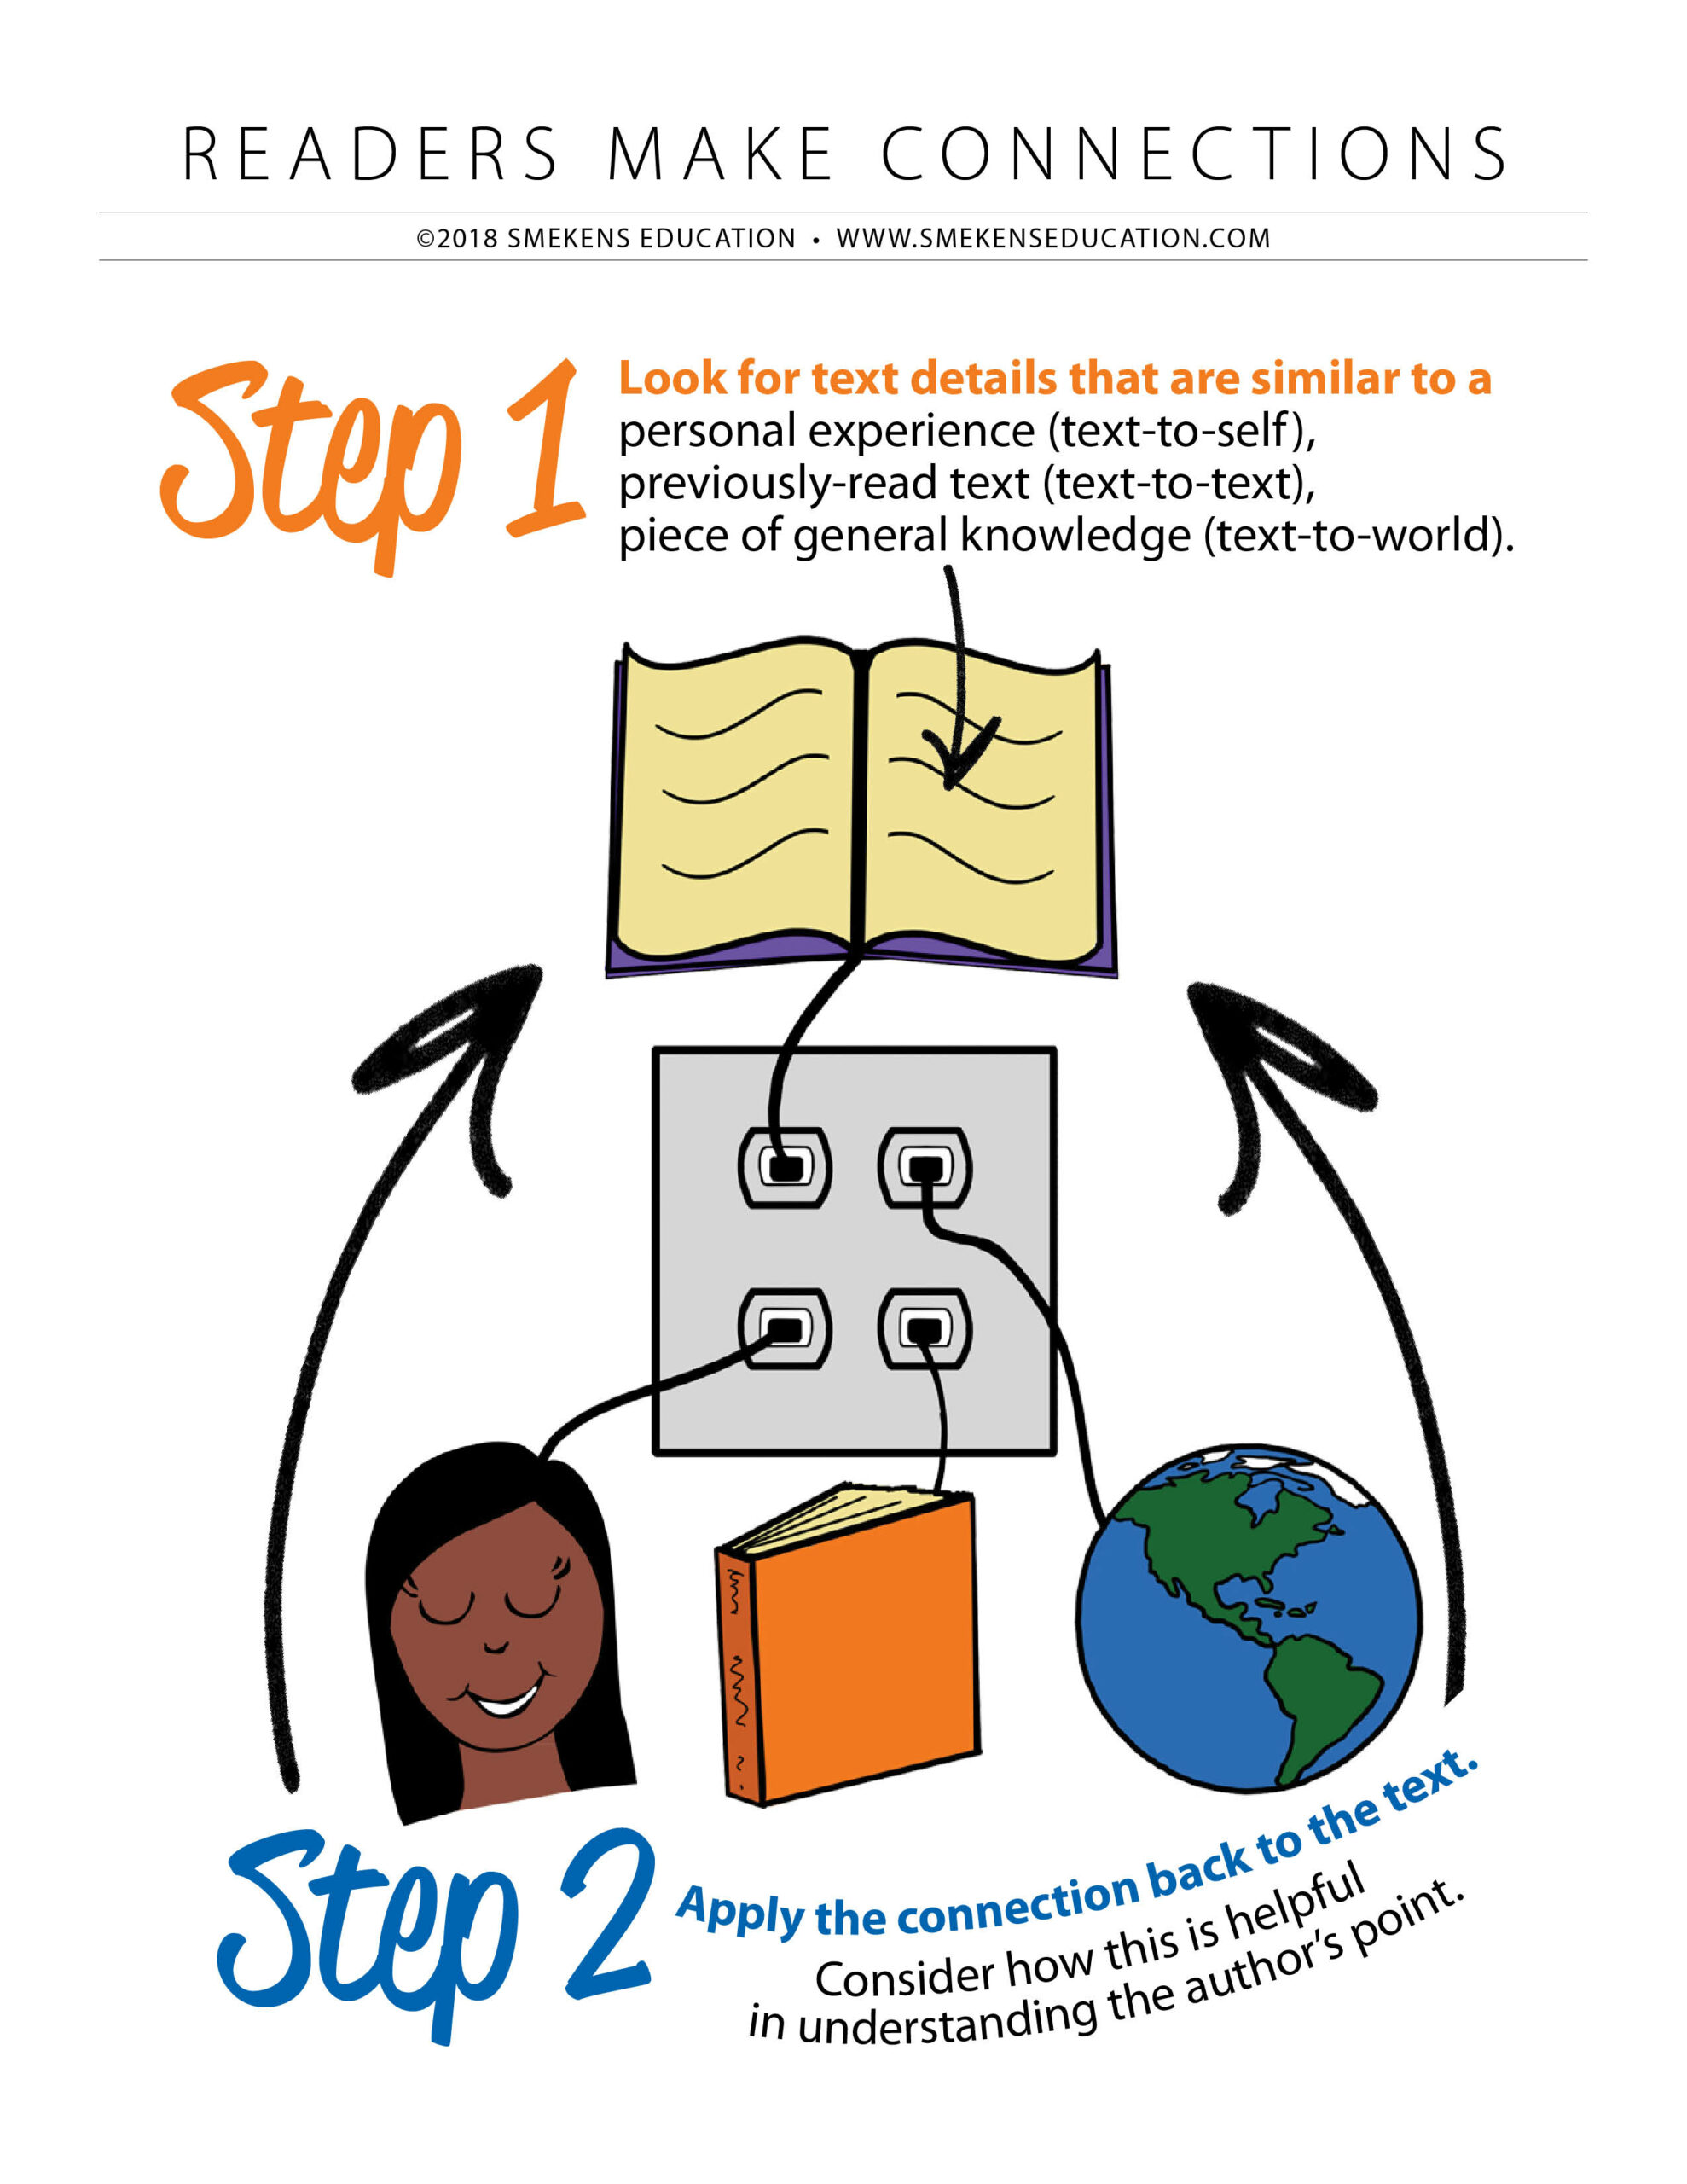 Apply reading connections back to the text -  STEP 2